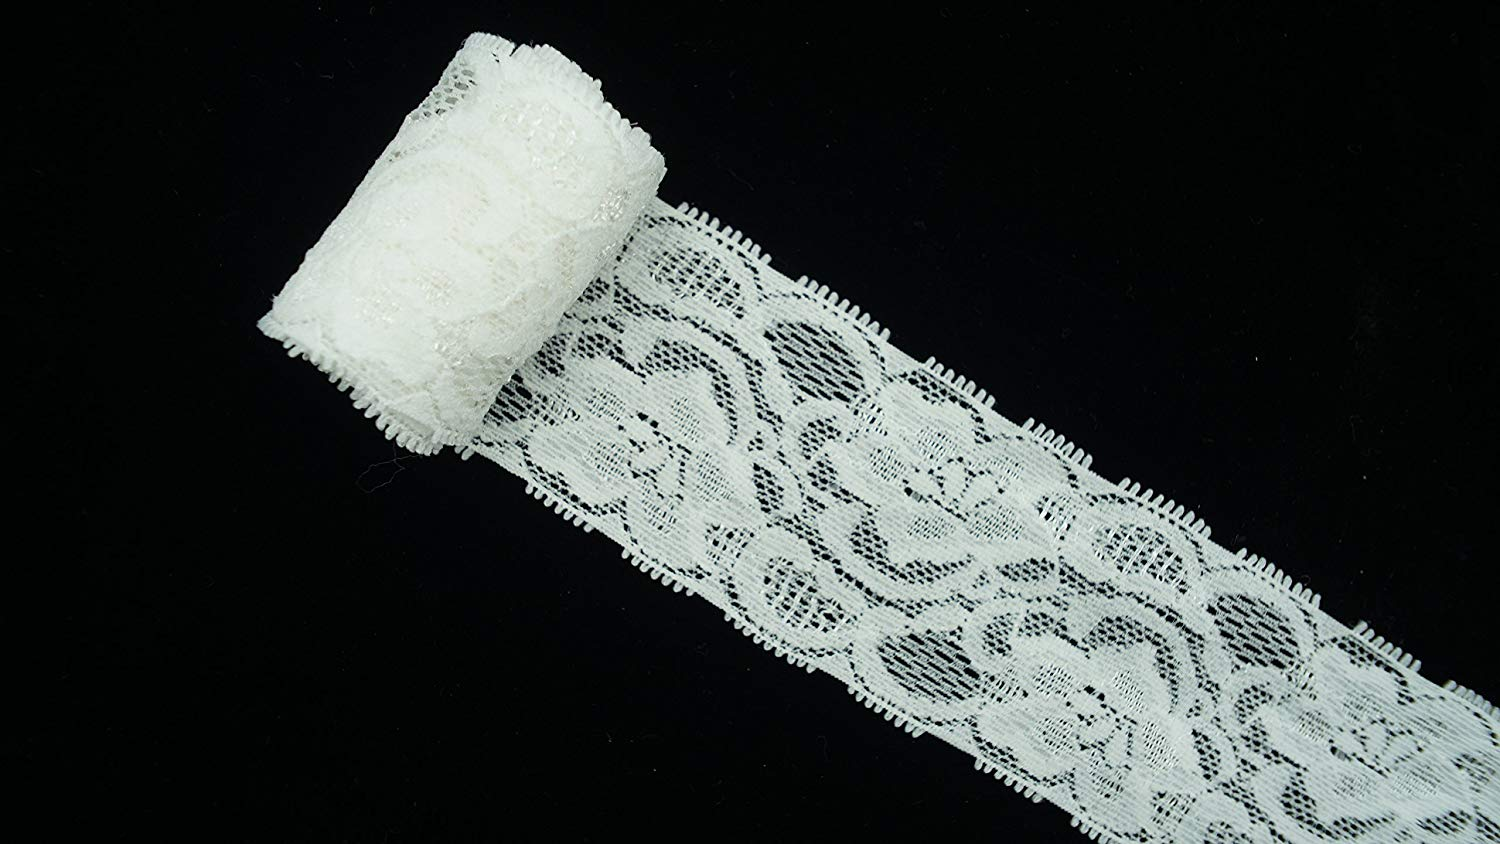 1d39da5c73 Get Quotations · Wide White Sliver Stretch Lace Trim Small Fringe Pattern  for Table Decoration